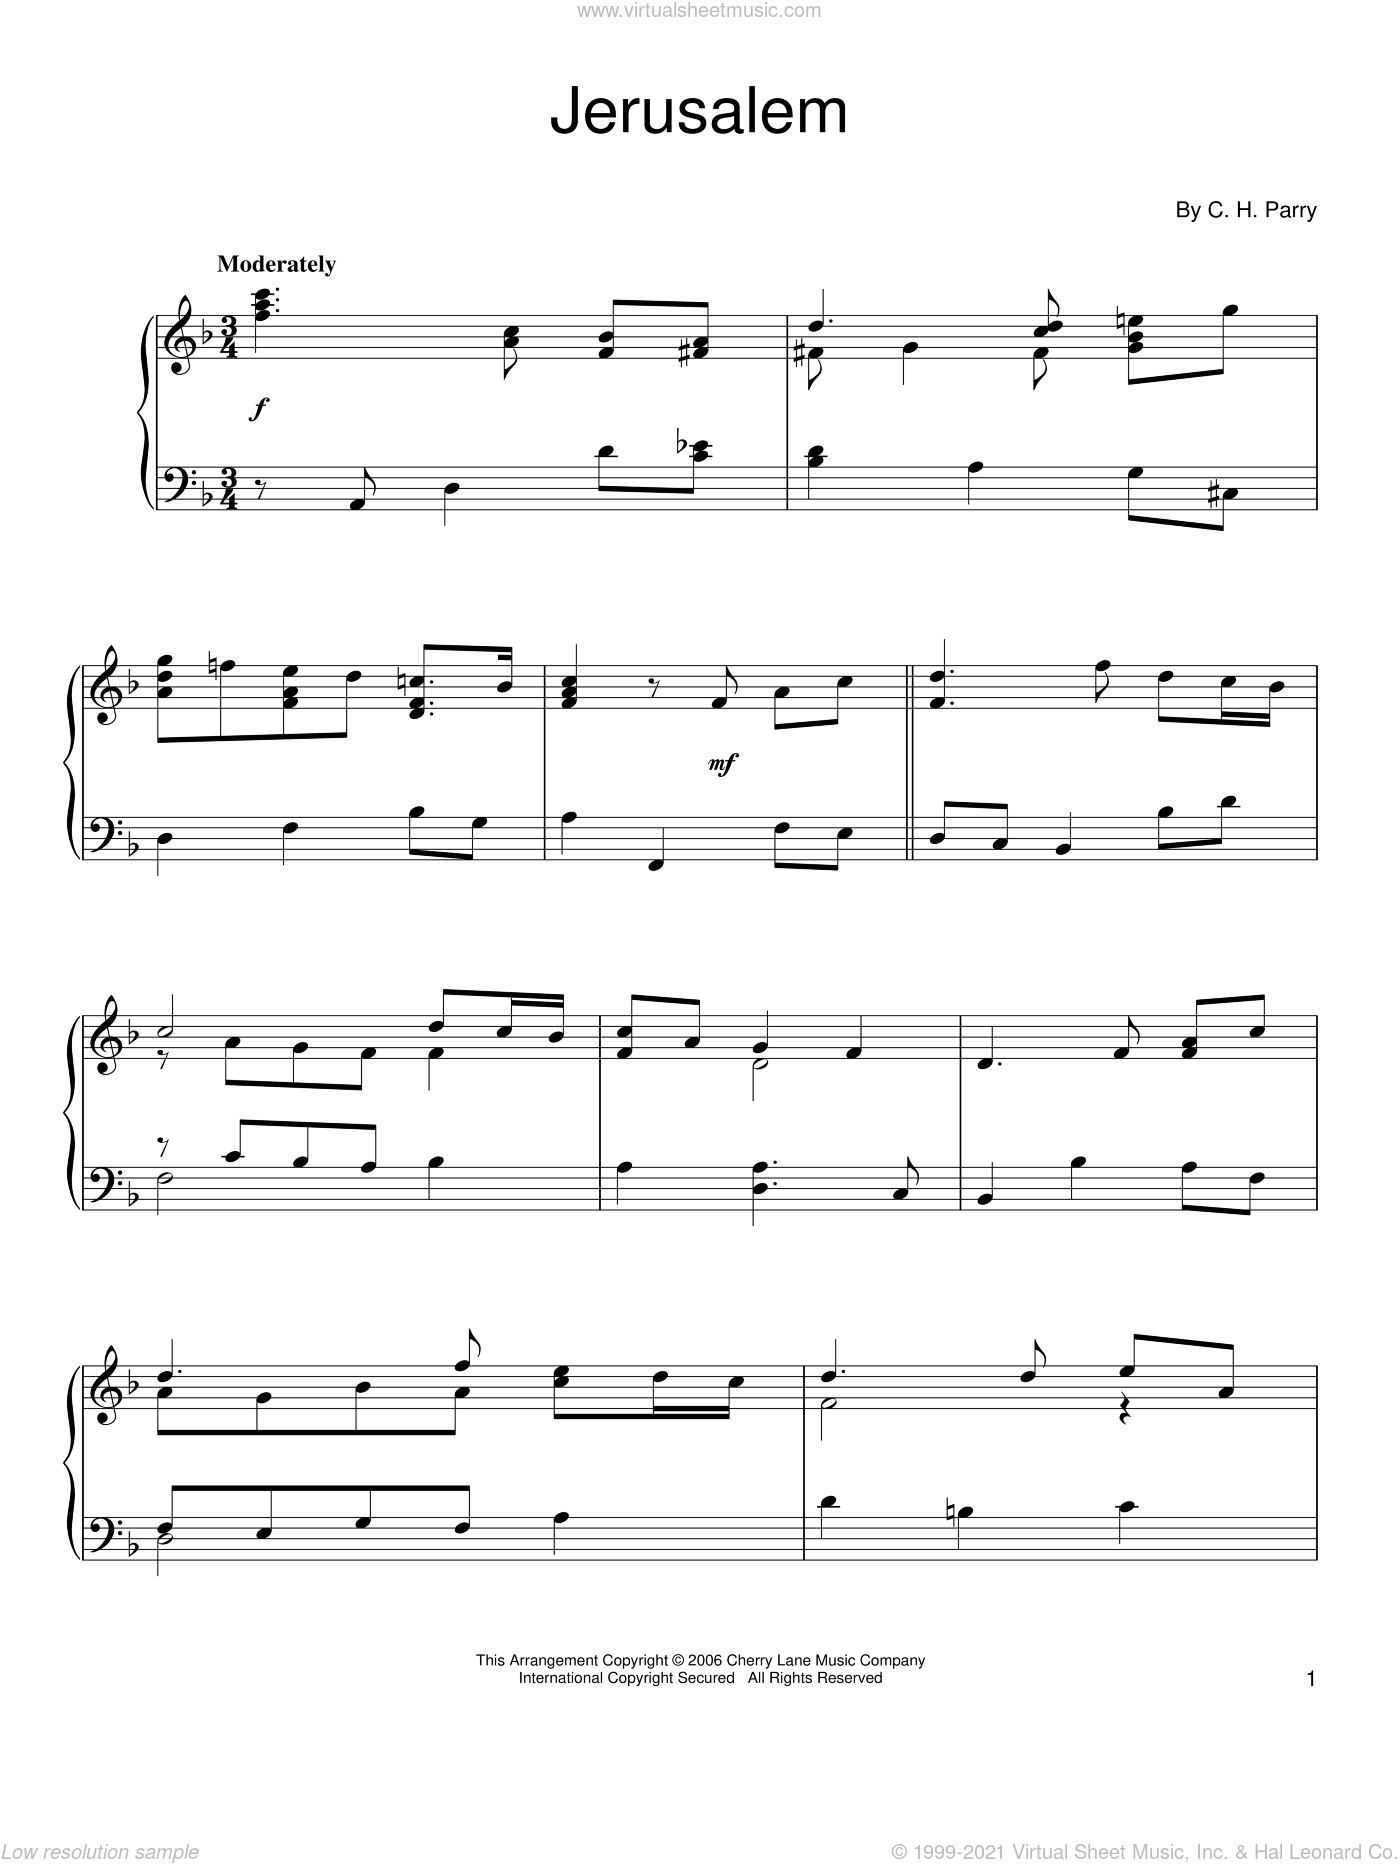 Jerusalem sheet music for piano solo by C.H. Parry, intermediate skill level